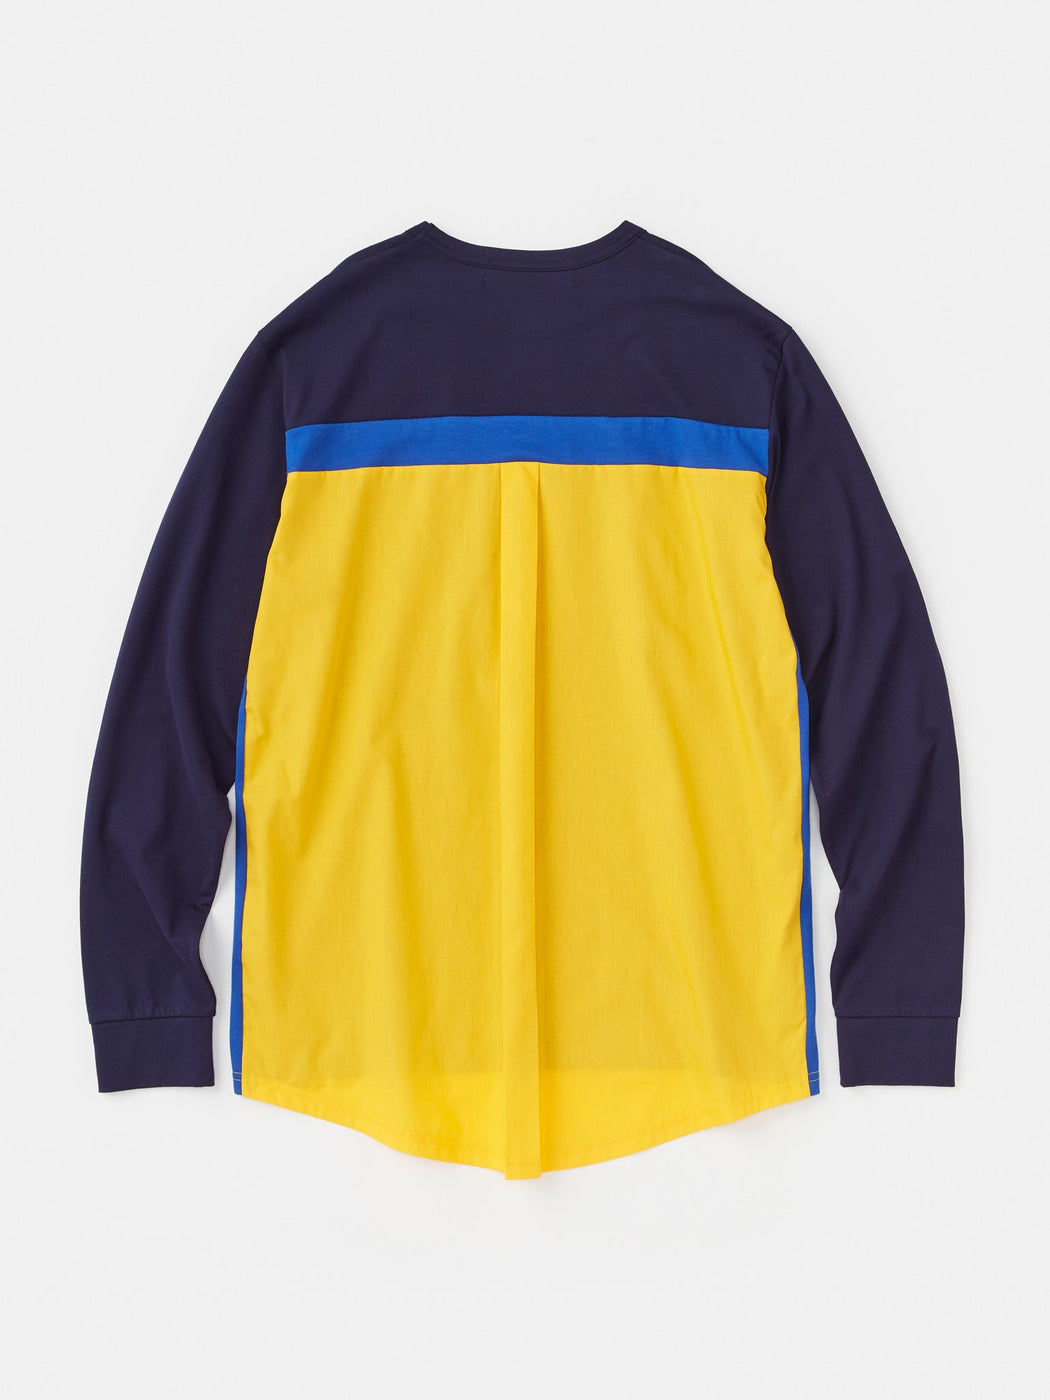 ALOYE Shirt Fabrics Long Sleeve T-shirt Navy-Yellow